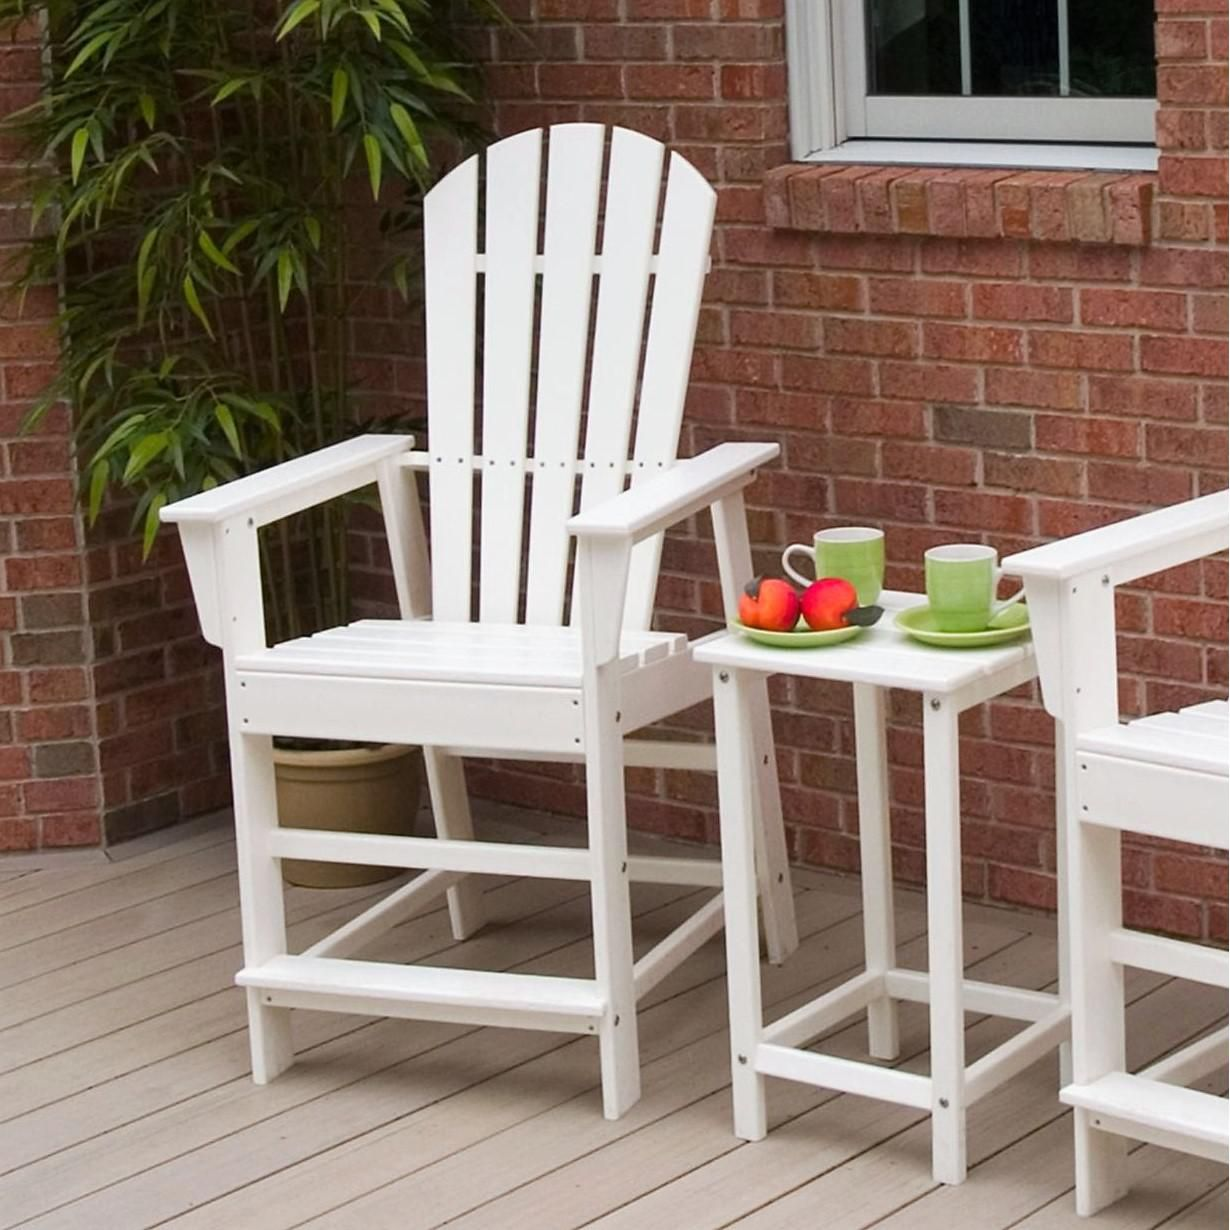 Groovy Polywood South Beach White Recycled Plastic Wood Patio Customarchery Wood Chair Design Ideas Customarcherynet